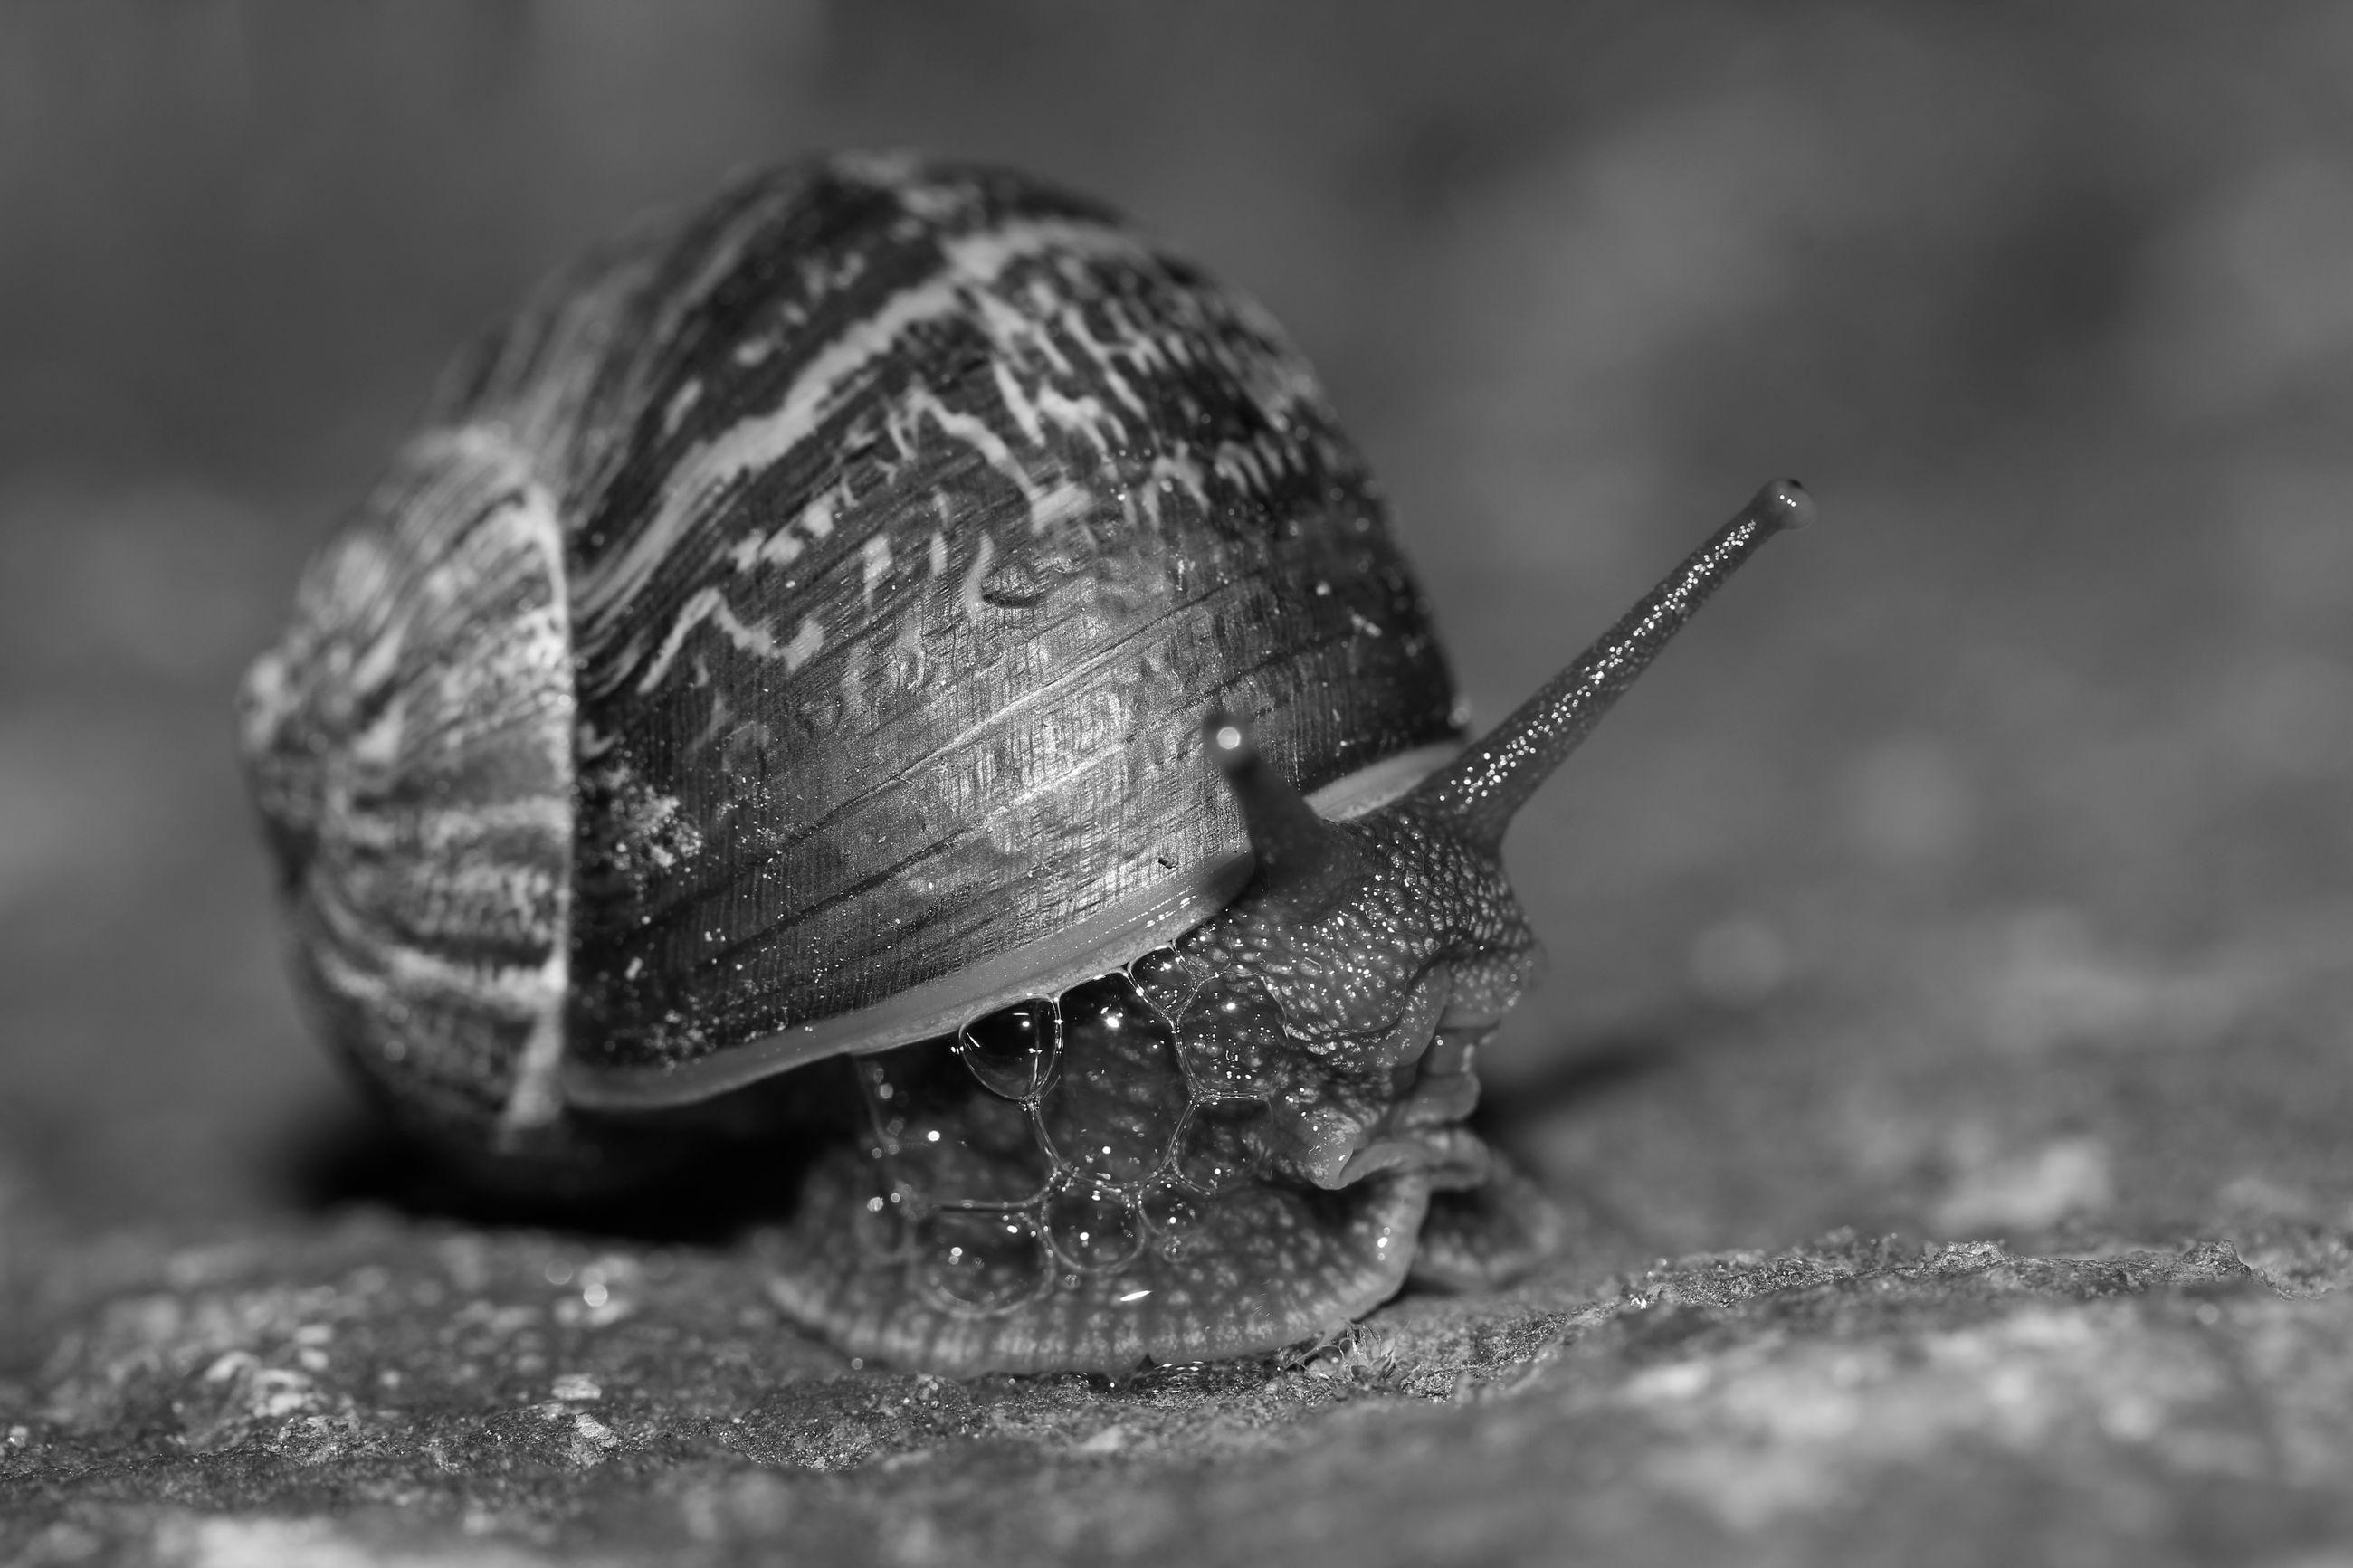 close-up, snail, selective focus, animal shell, focus on foreground, macro, extreme close-up, zoology, surface level, freshness, organic, nature, beauty in nature, day, mollusc, fragility, gastropod, crawling